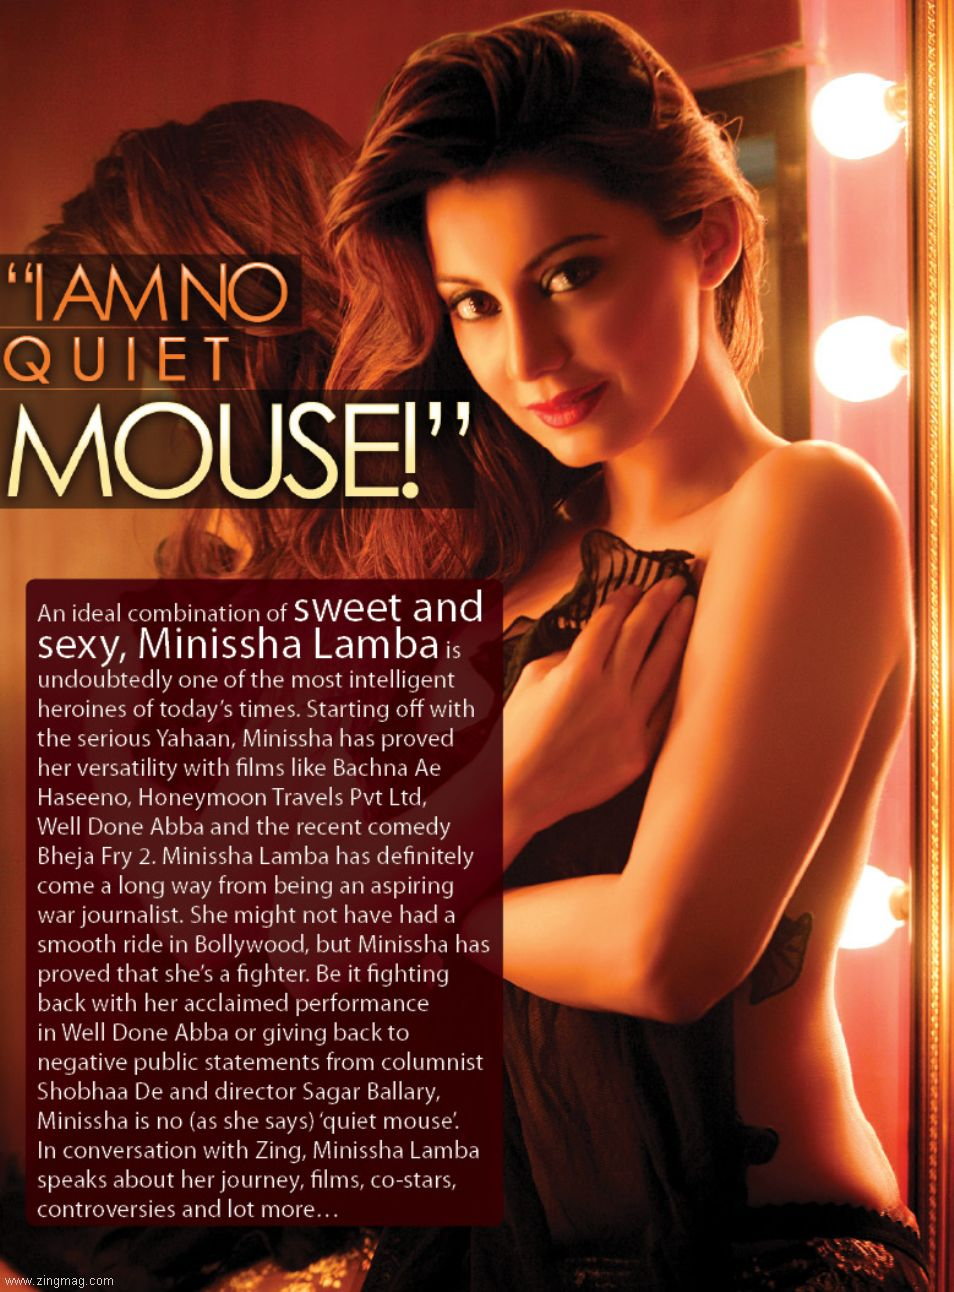 I am no quiet mouse - Minissha Lamba